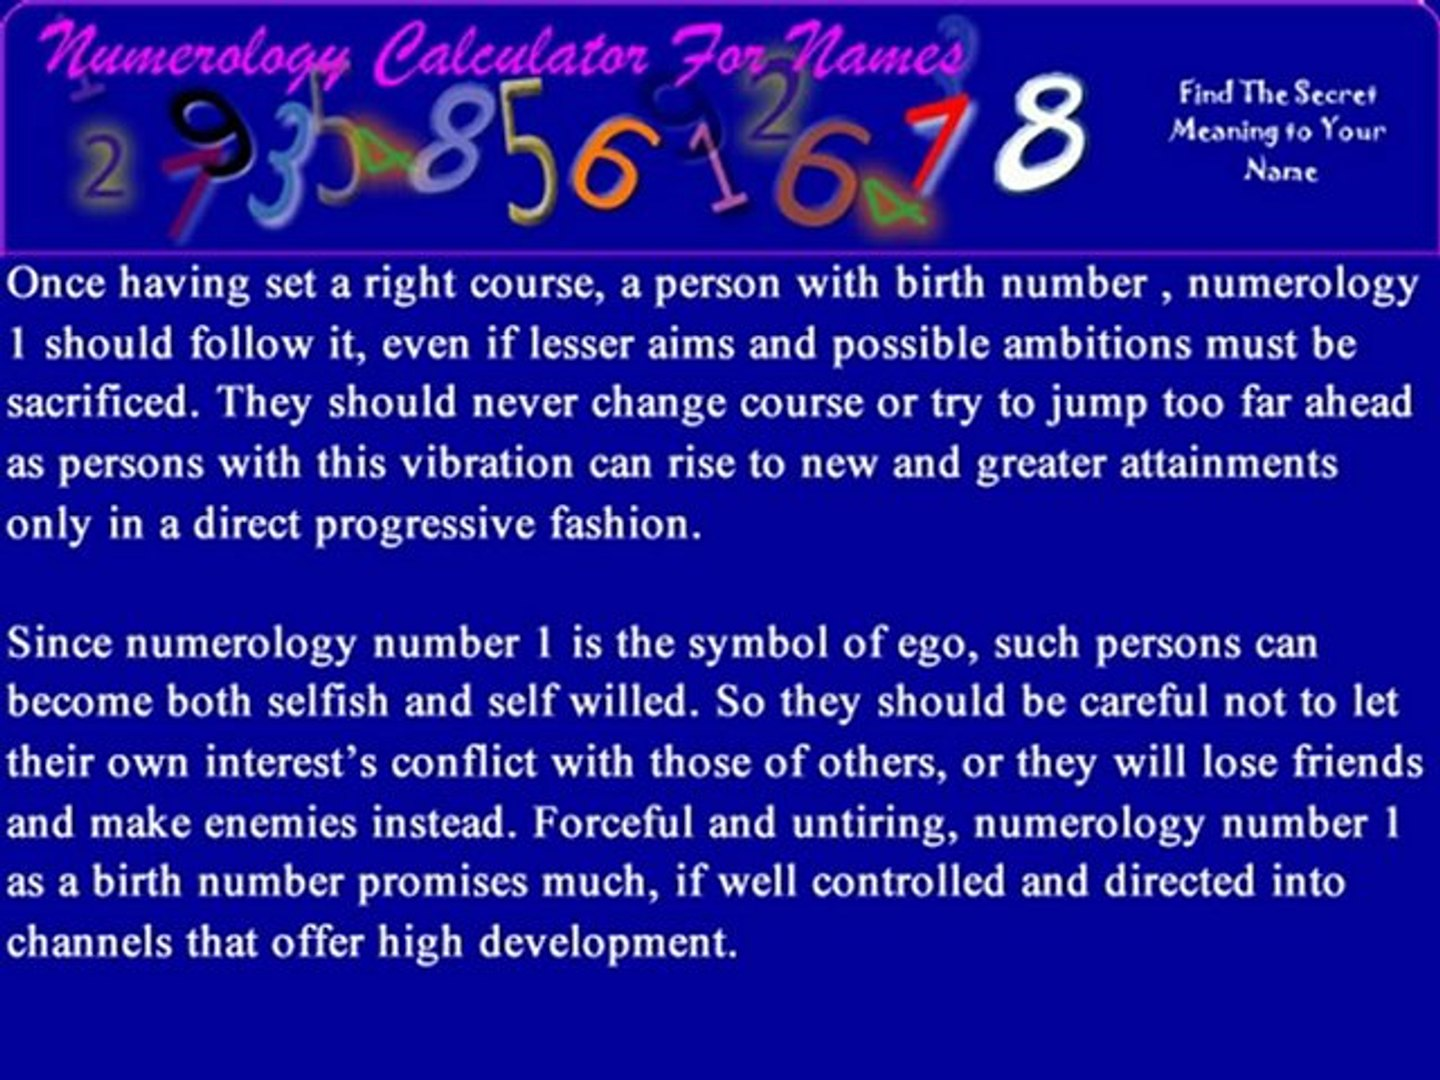 Life Path Number 1- Numerology Calculator For Names